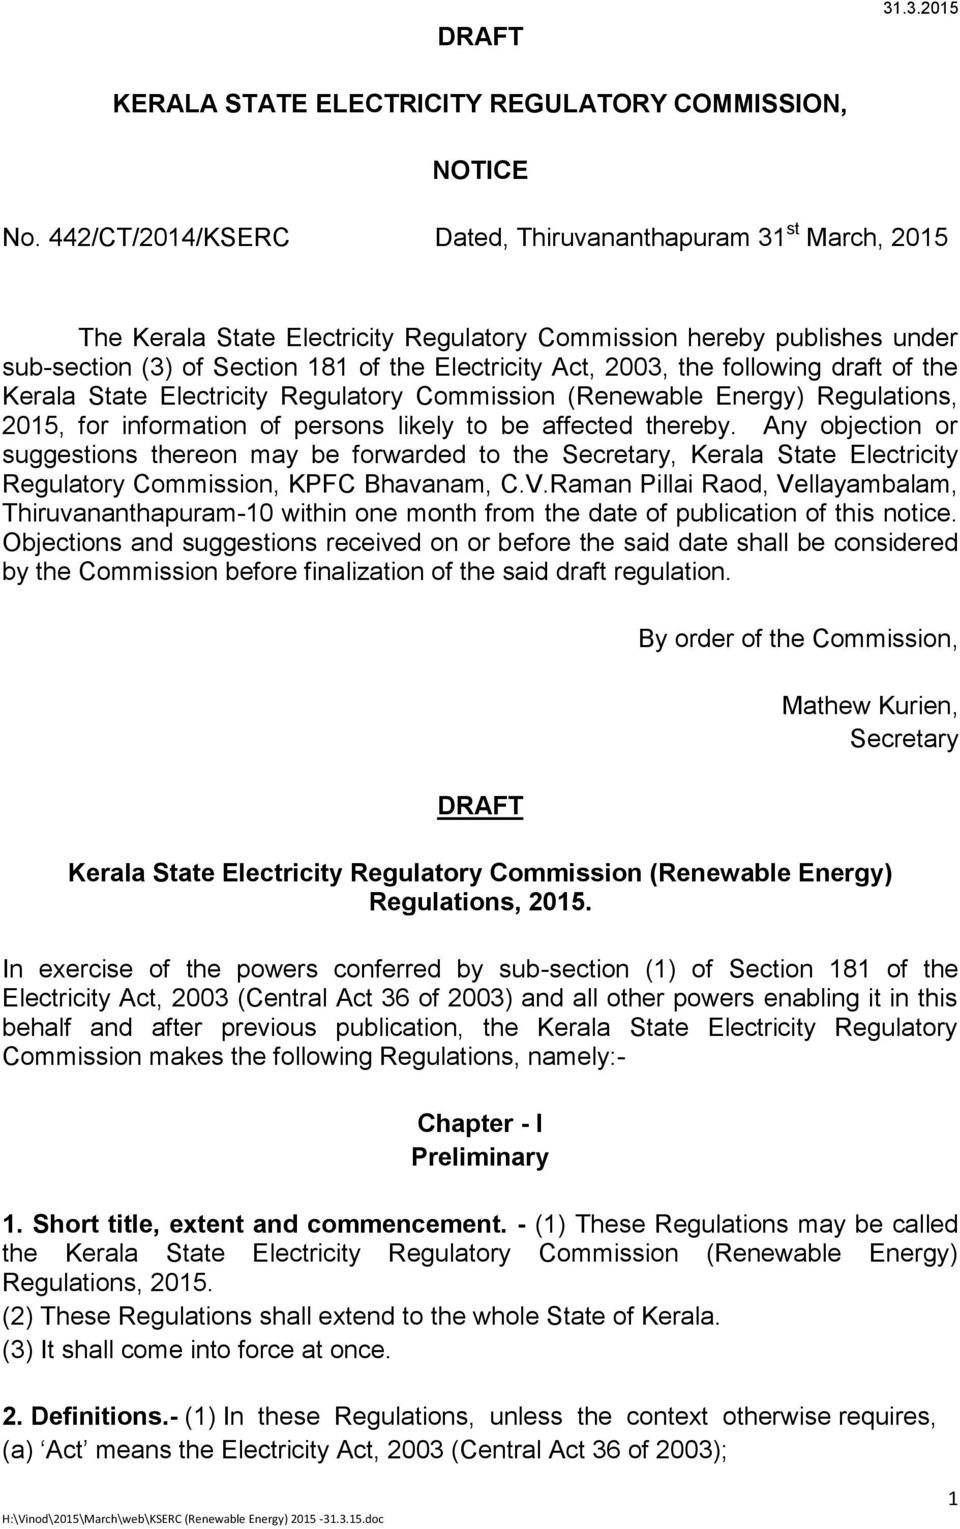 sub-section (3) of Section 181 of the Electricity Act, 2003, the following draft of the Kerala State Electricity Regulatory Commission (Renewable Energy) Regulations, 2015, for information of persons